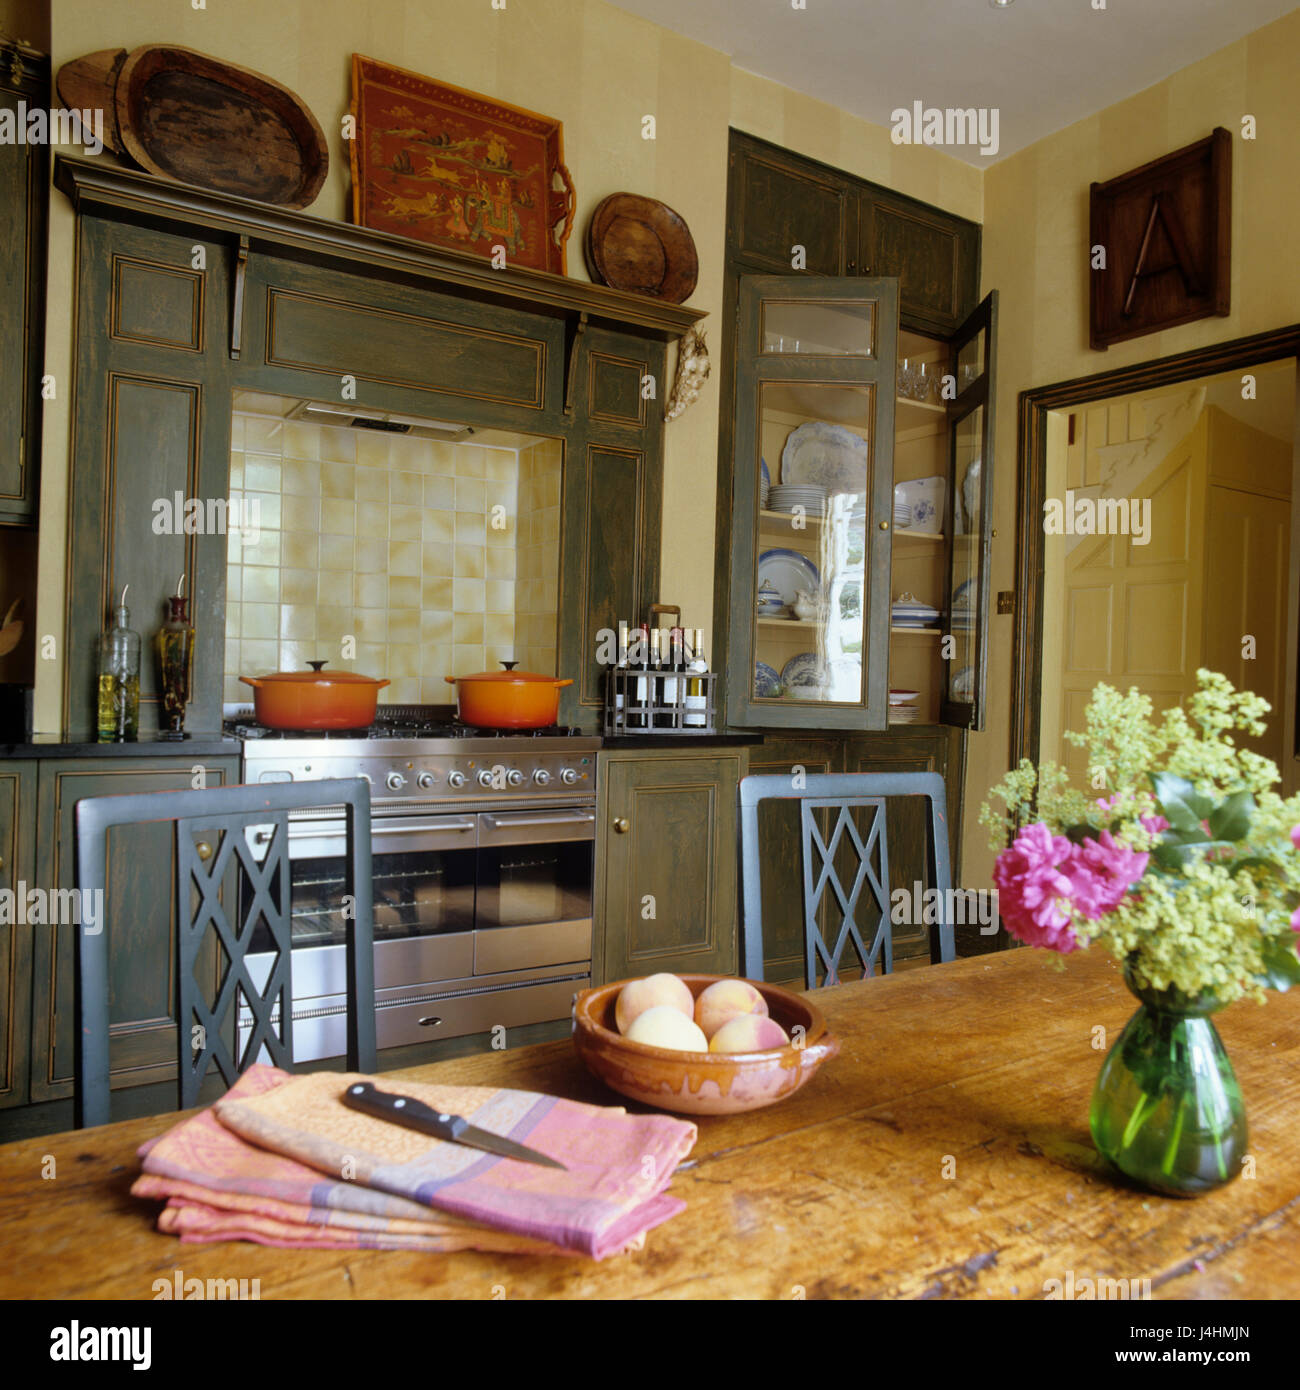 Kitchen table in front of stove - Stock Image